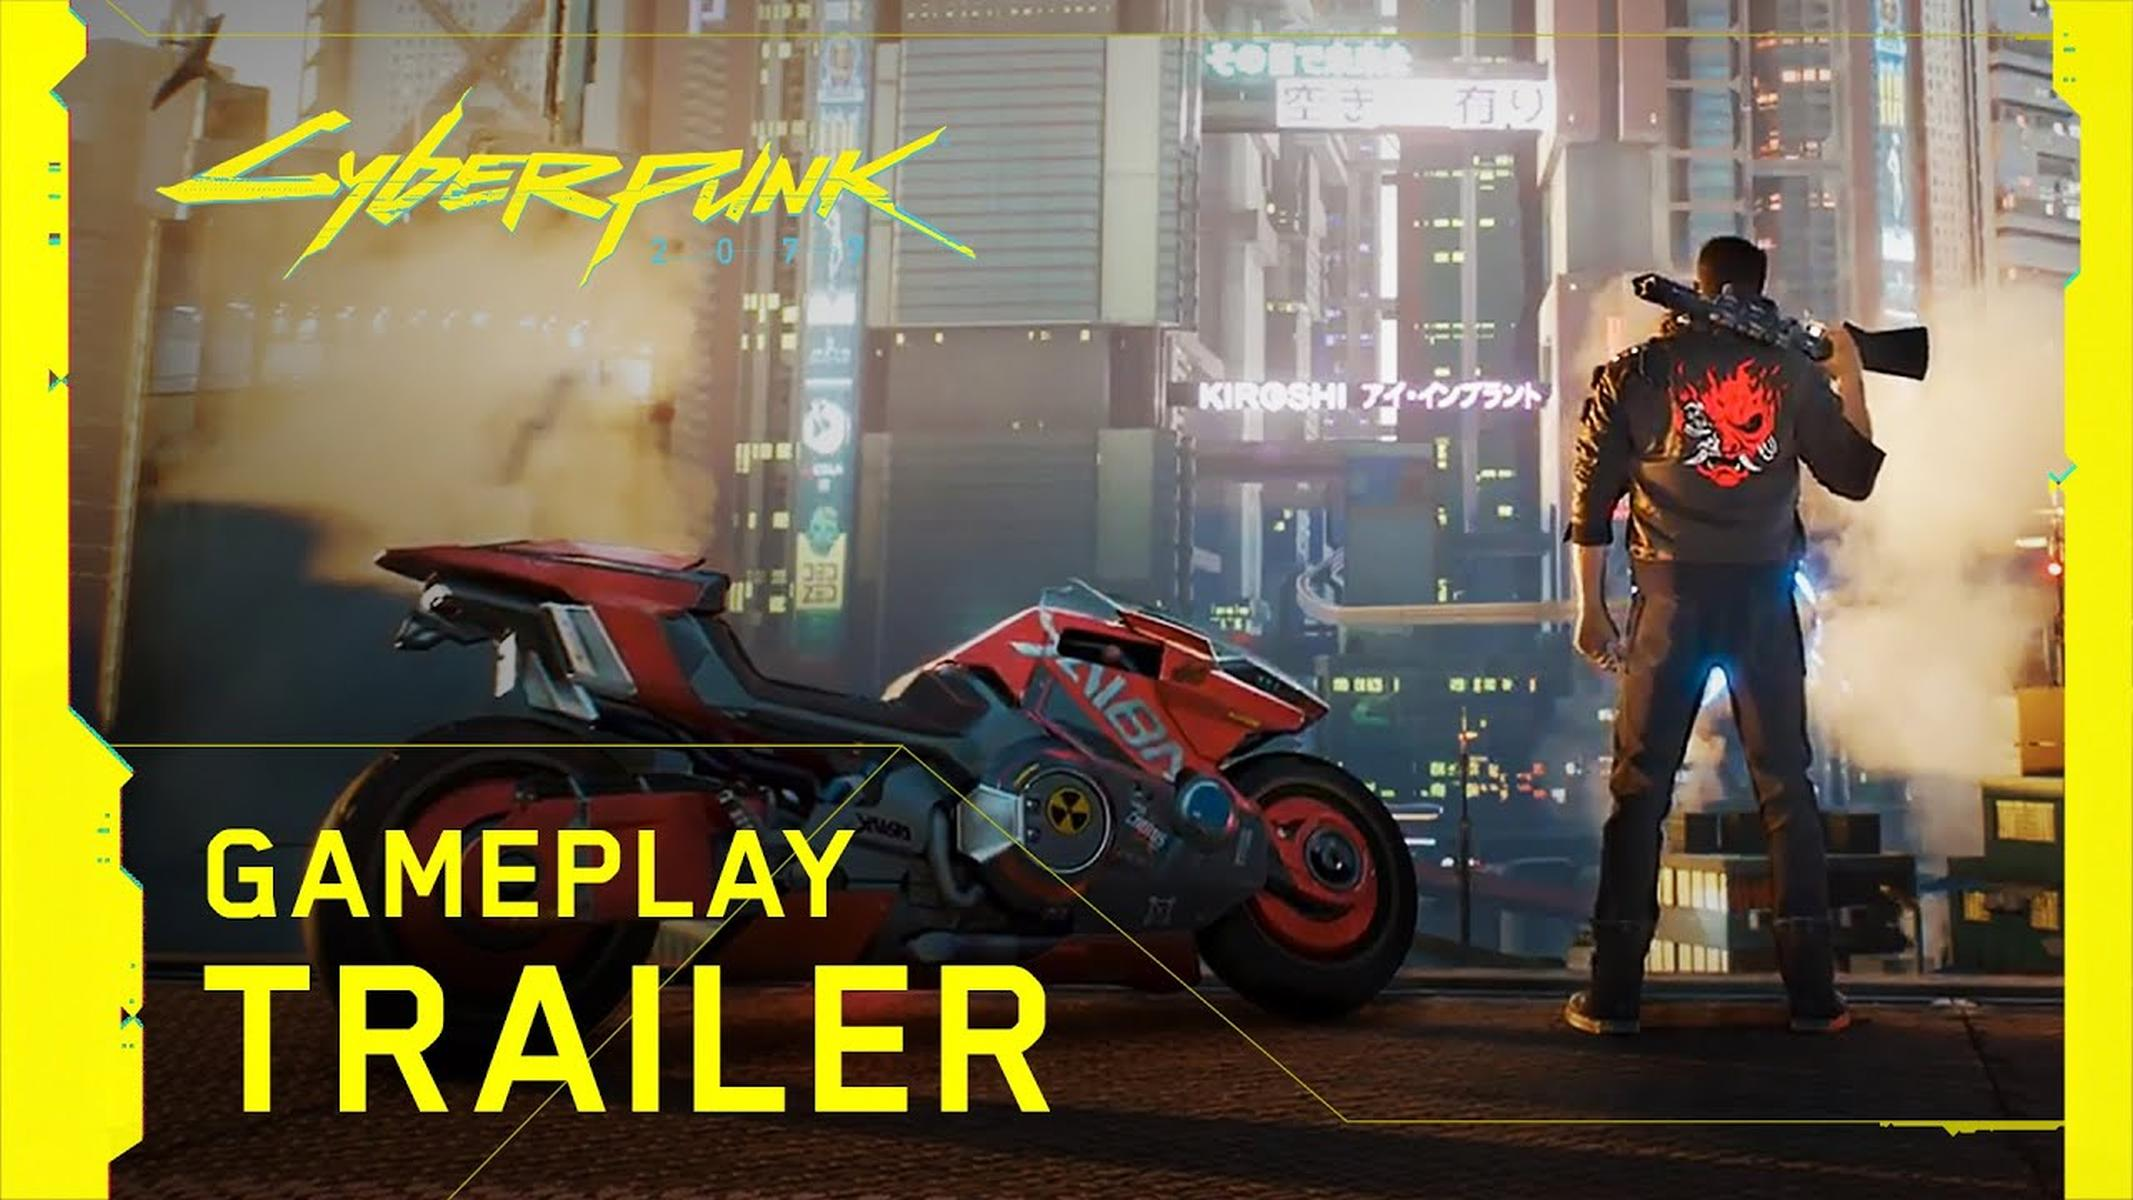 Cyberpunk 2077 Final Gameplay Trailer